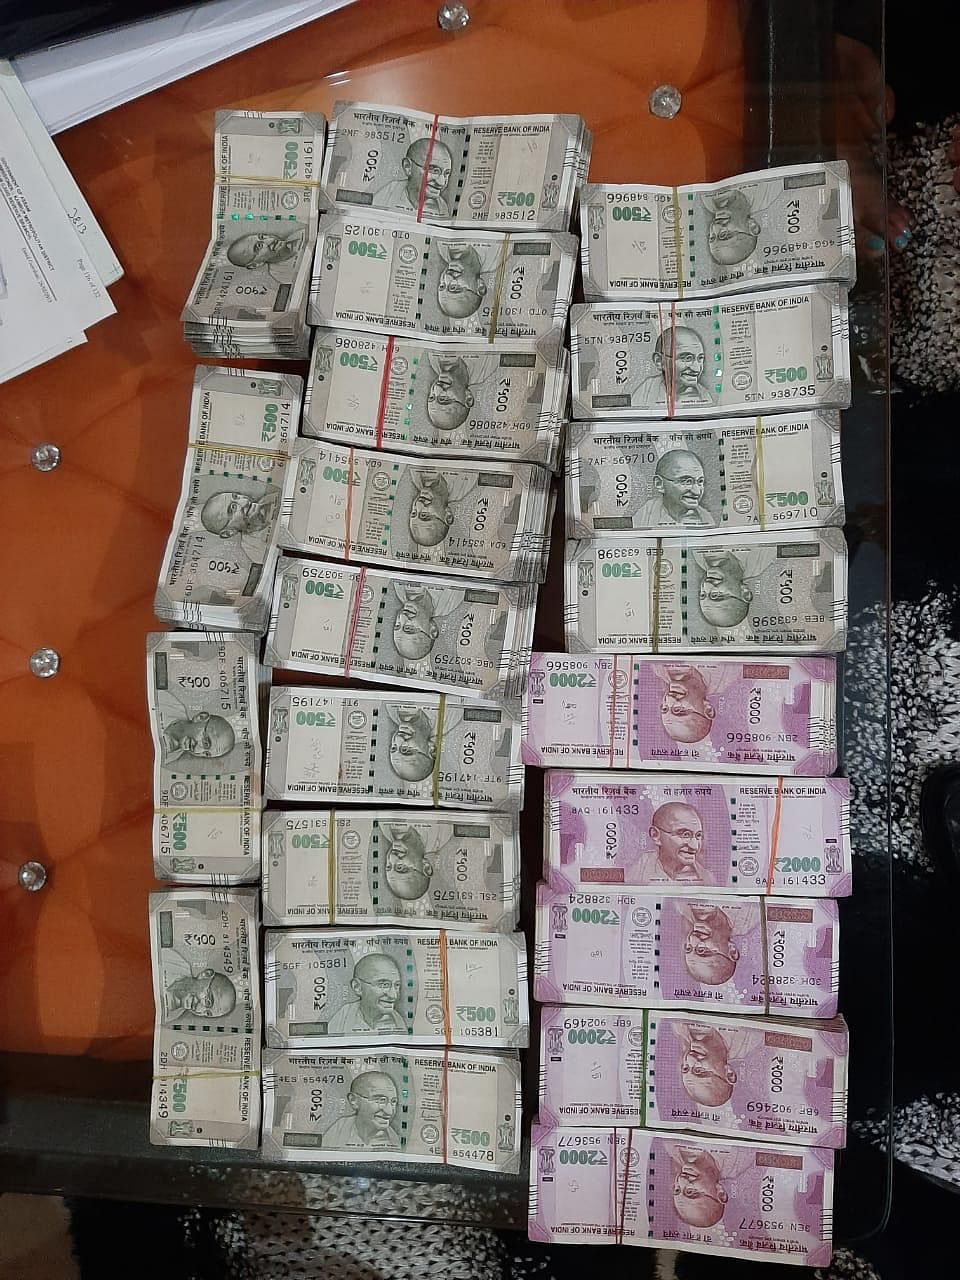 Rs 18.46 lakh in cash was recovered from the residence of the arrested accused at Kalapahar in Guwahati